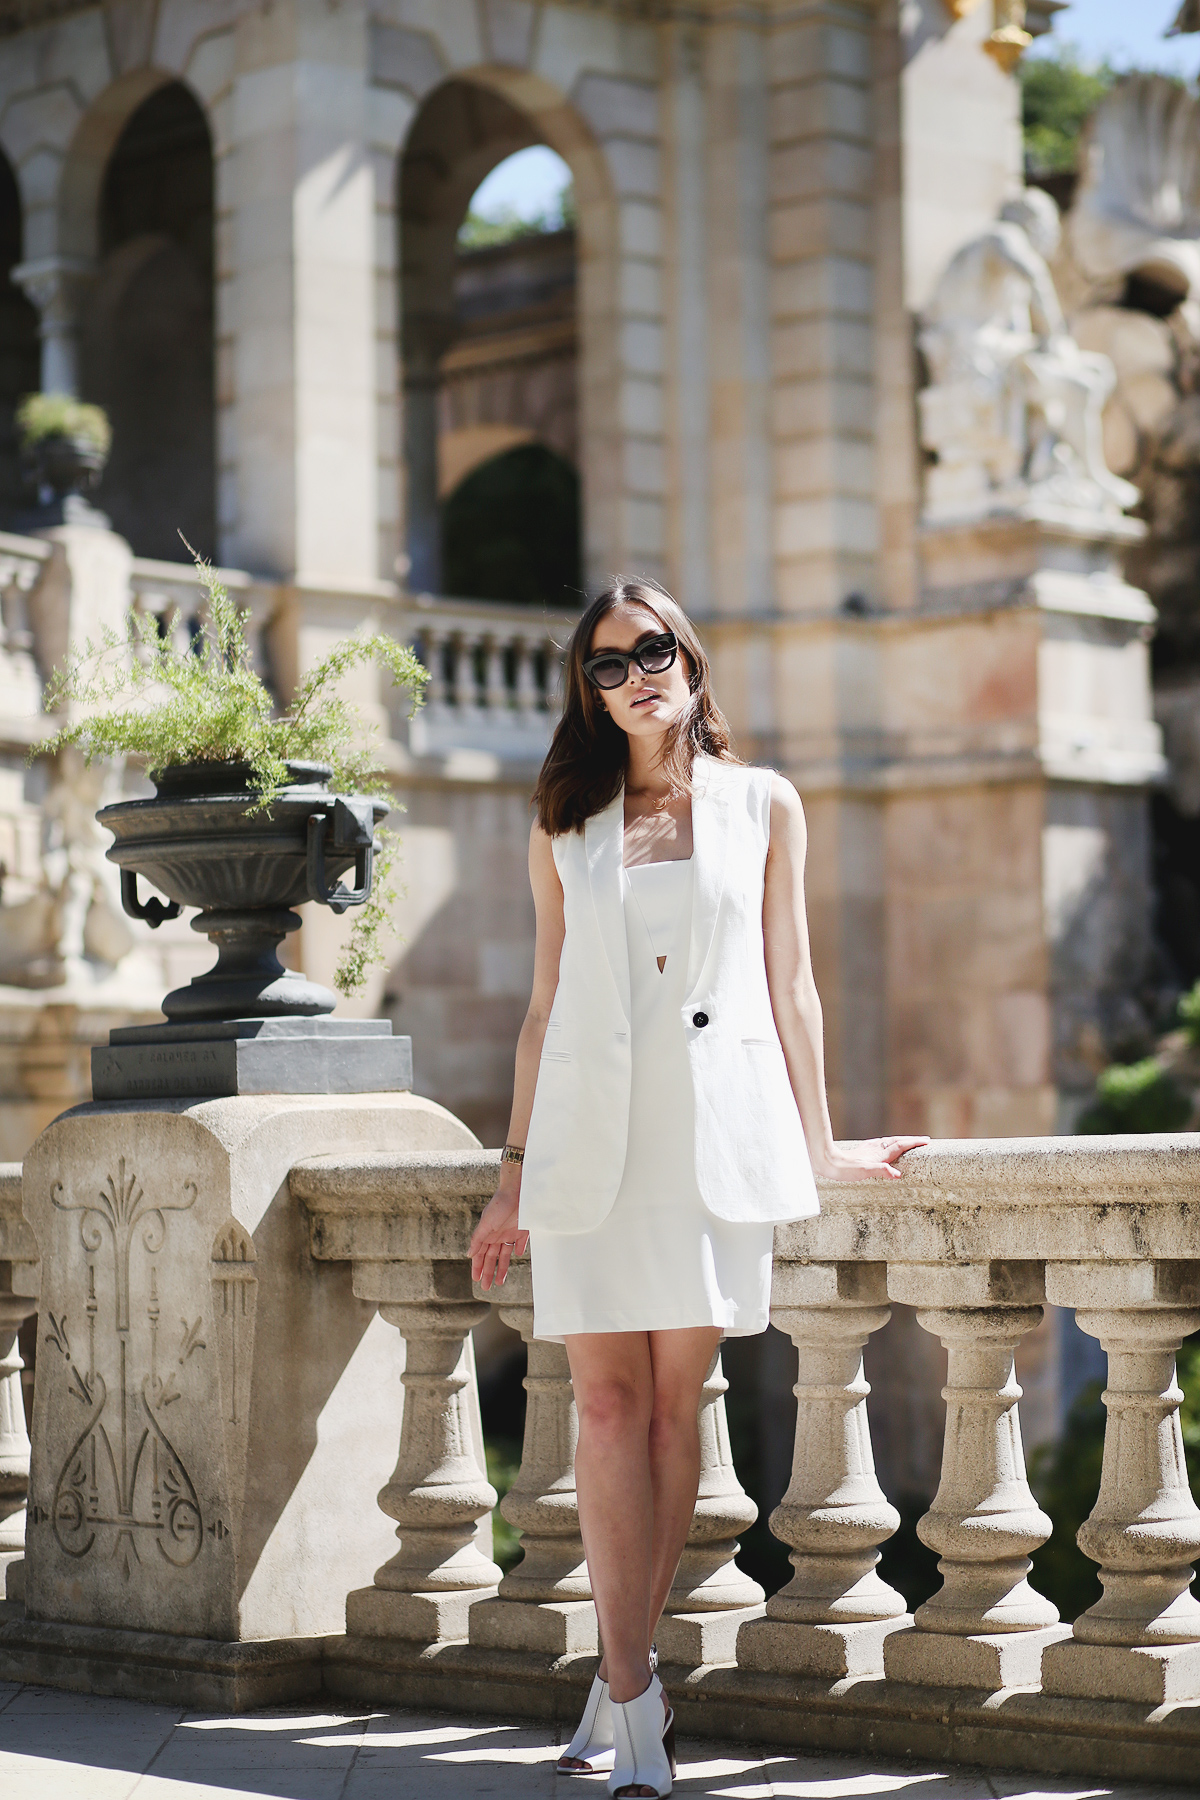 Anoushka Is Wearing White On White, Dress And Vest From Mango, Mules From Office And Sunglasses From ASOS